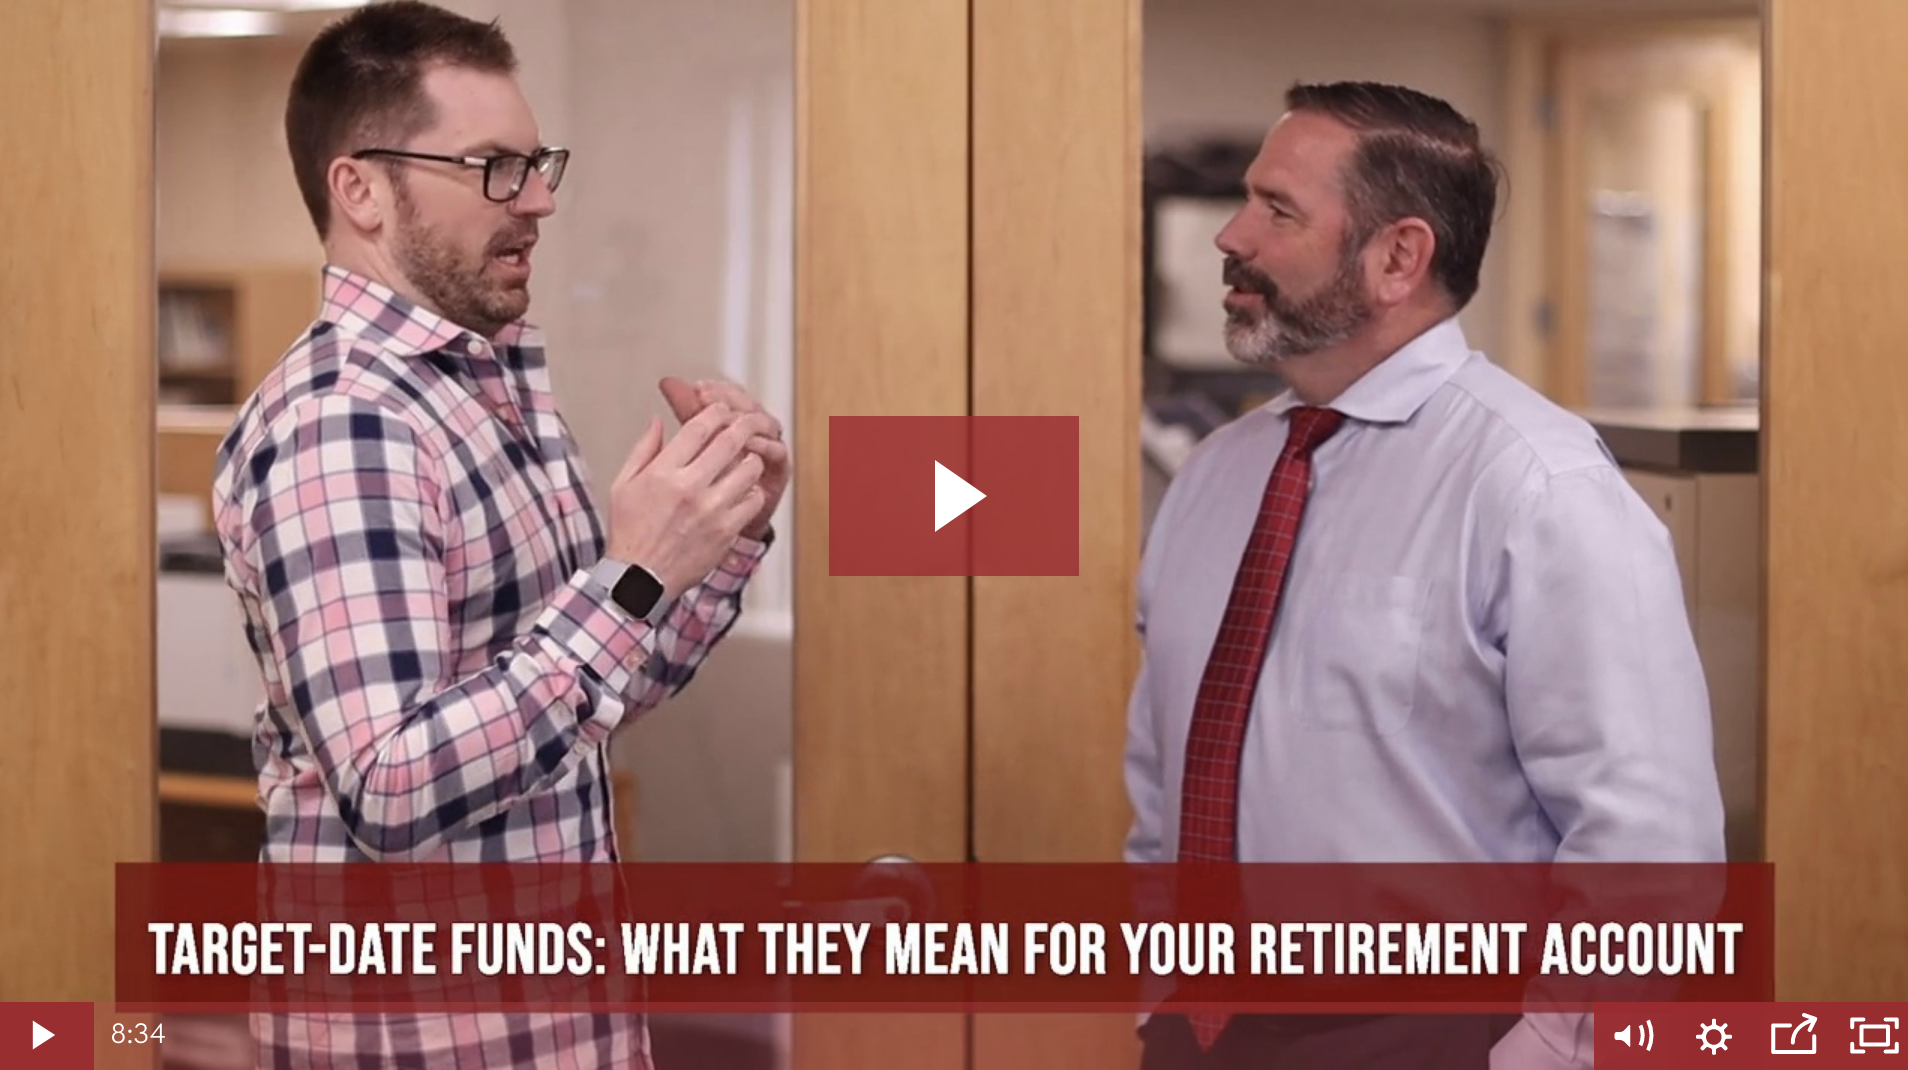 Target-Date Funds & The Role They Play In Your Retirement Accounts